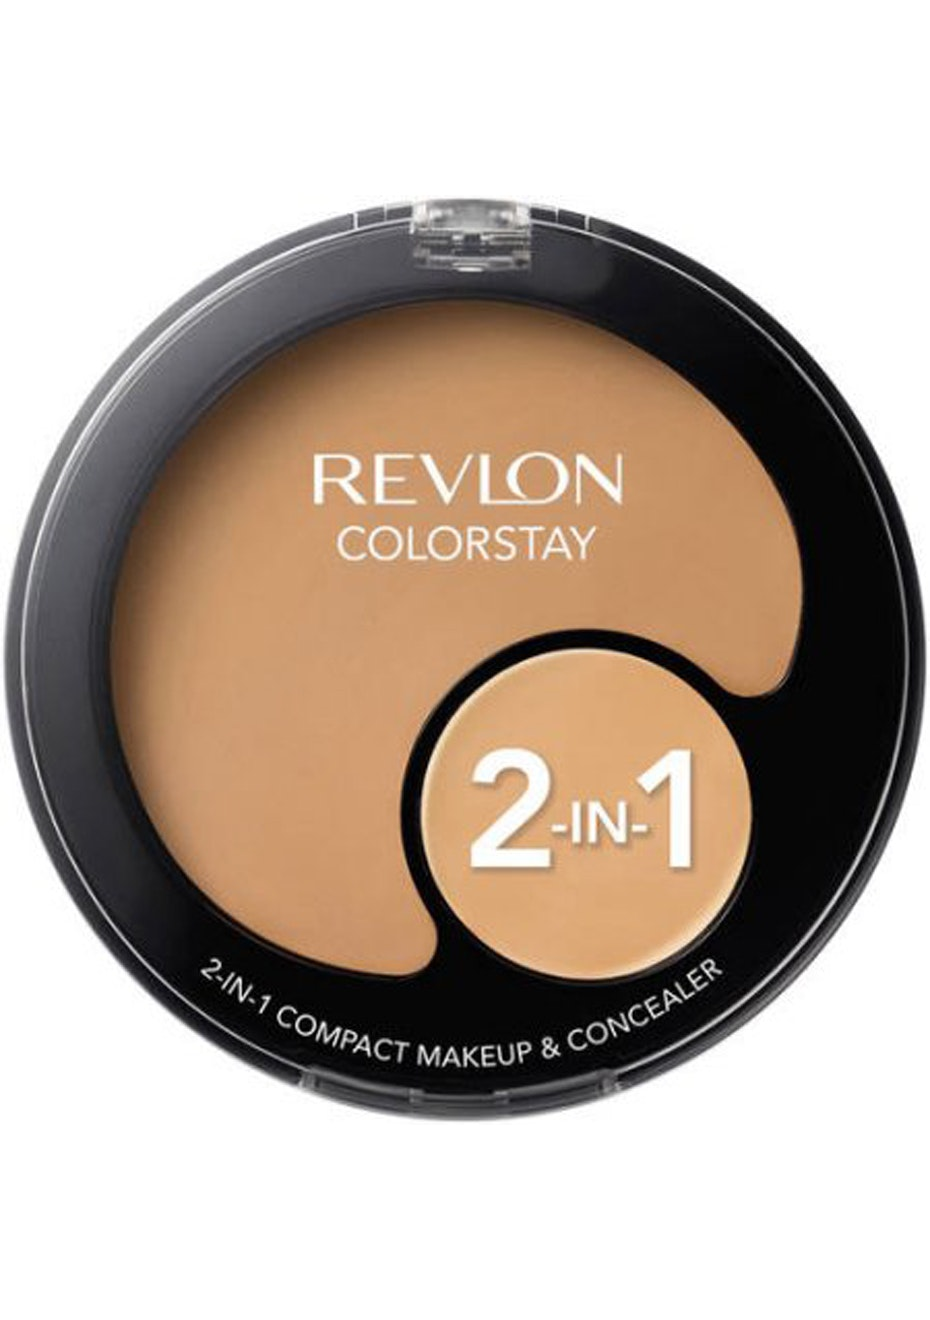 Revlon Colorstay 2in1 Compact Makeup And Concealer 180 Sand Beige